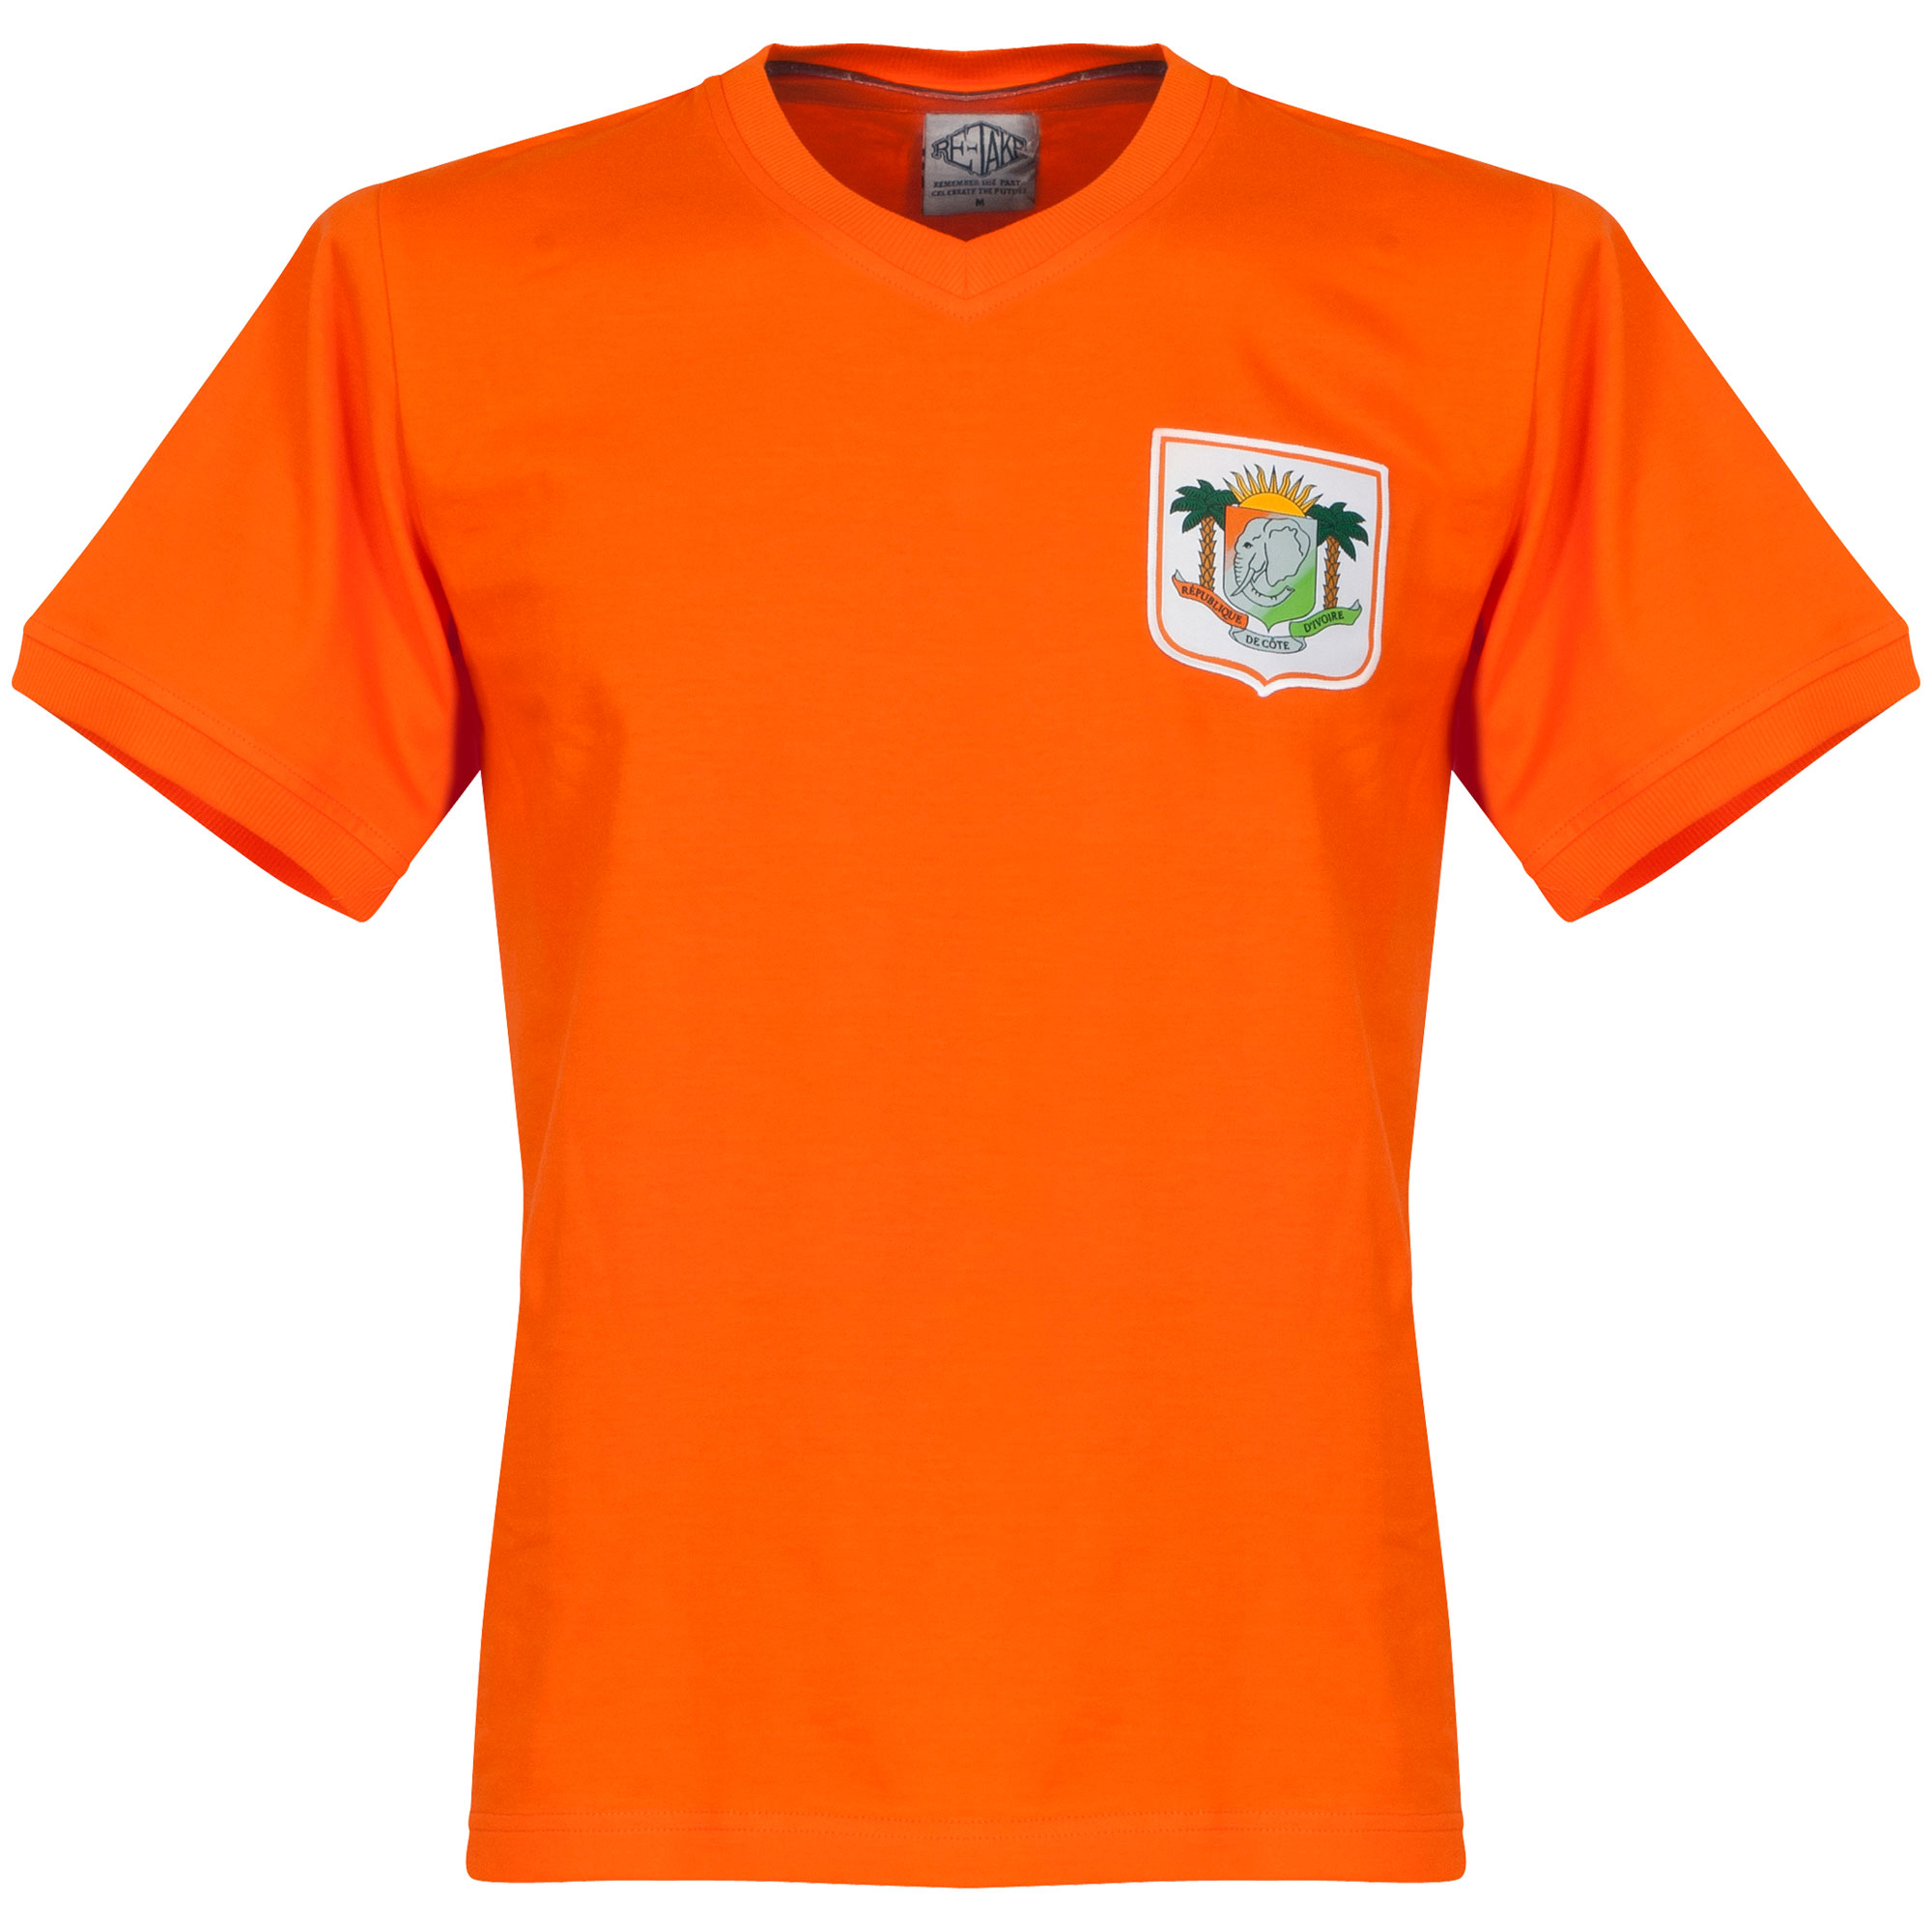 Re-Take Ivory Coast Retro Shirt - XXL